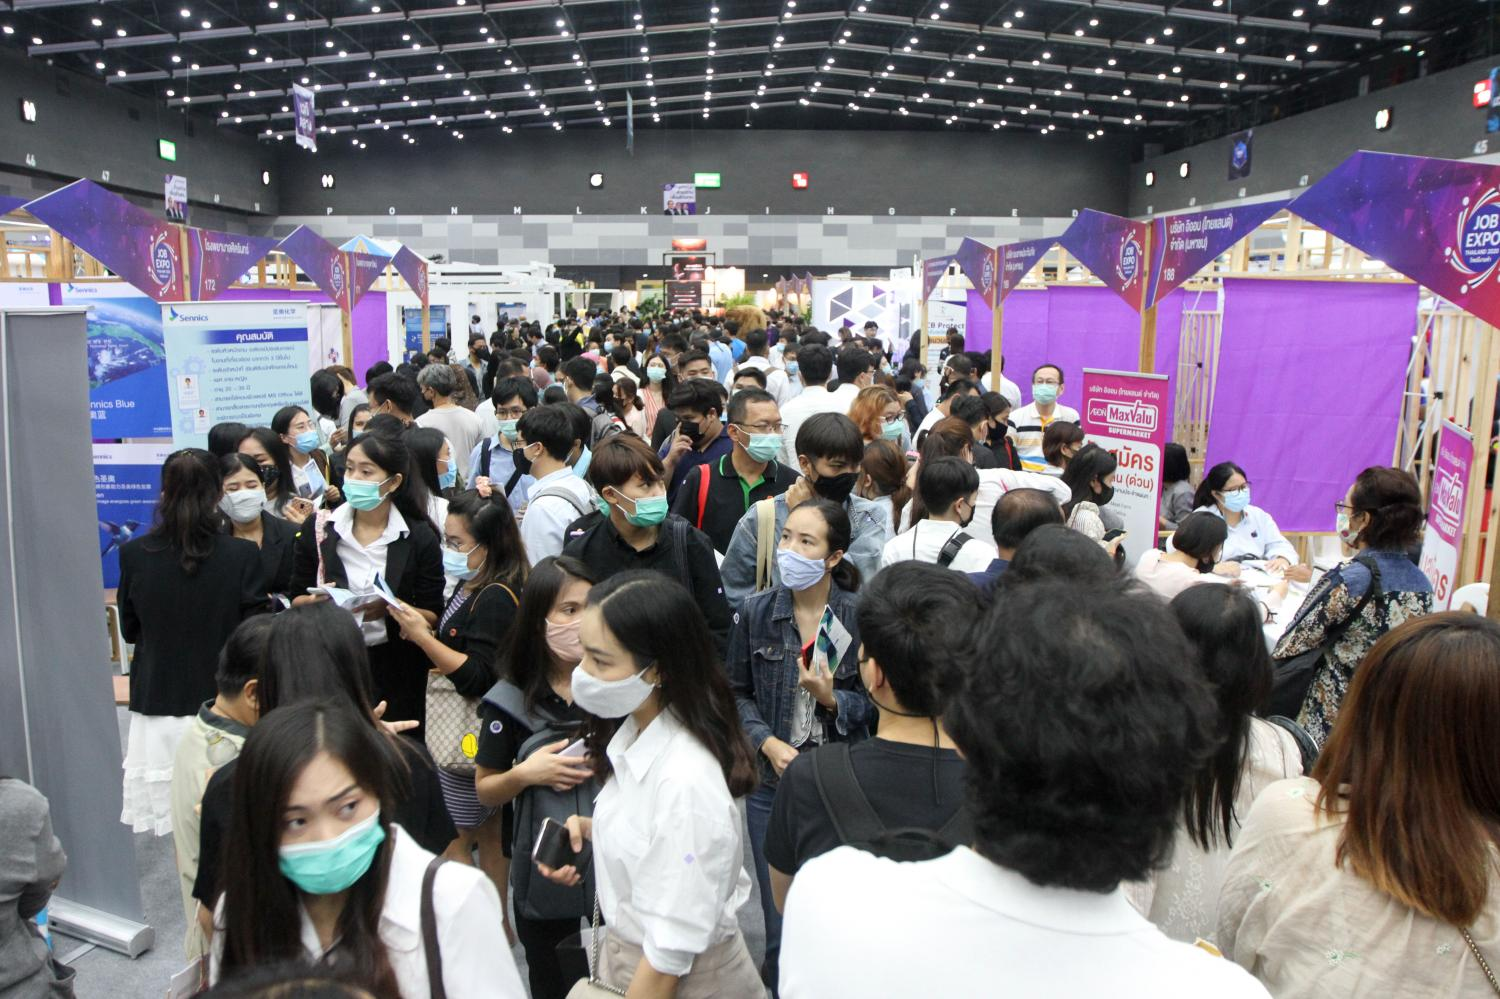 jCareer seekers flock to the Job Expo Thailand 2020 at the Bangkok International Trade and Exhibition Centre in Bang Na district to find a million employment opportunities from many in the business sector. Many hope to get through hard times during the outbreak of Covid-19.